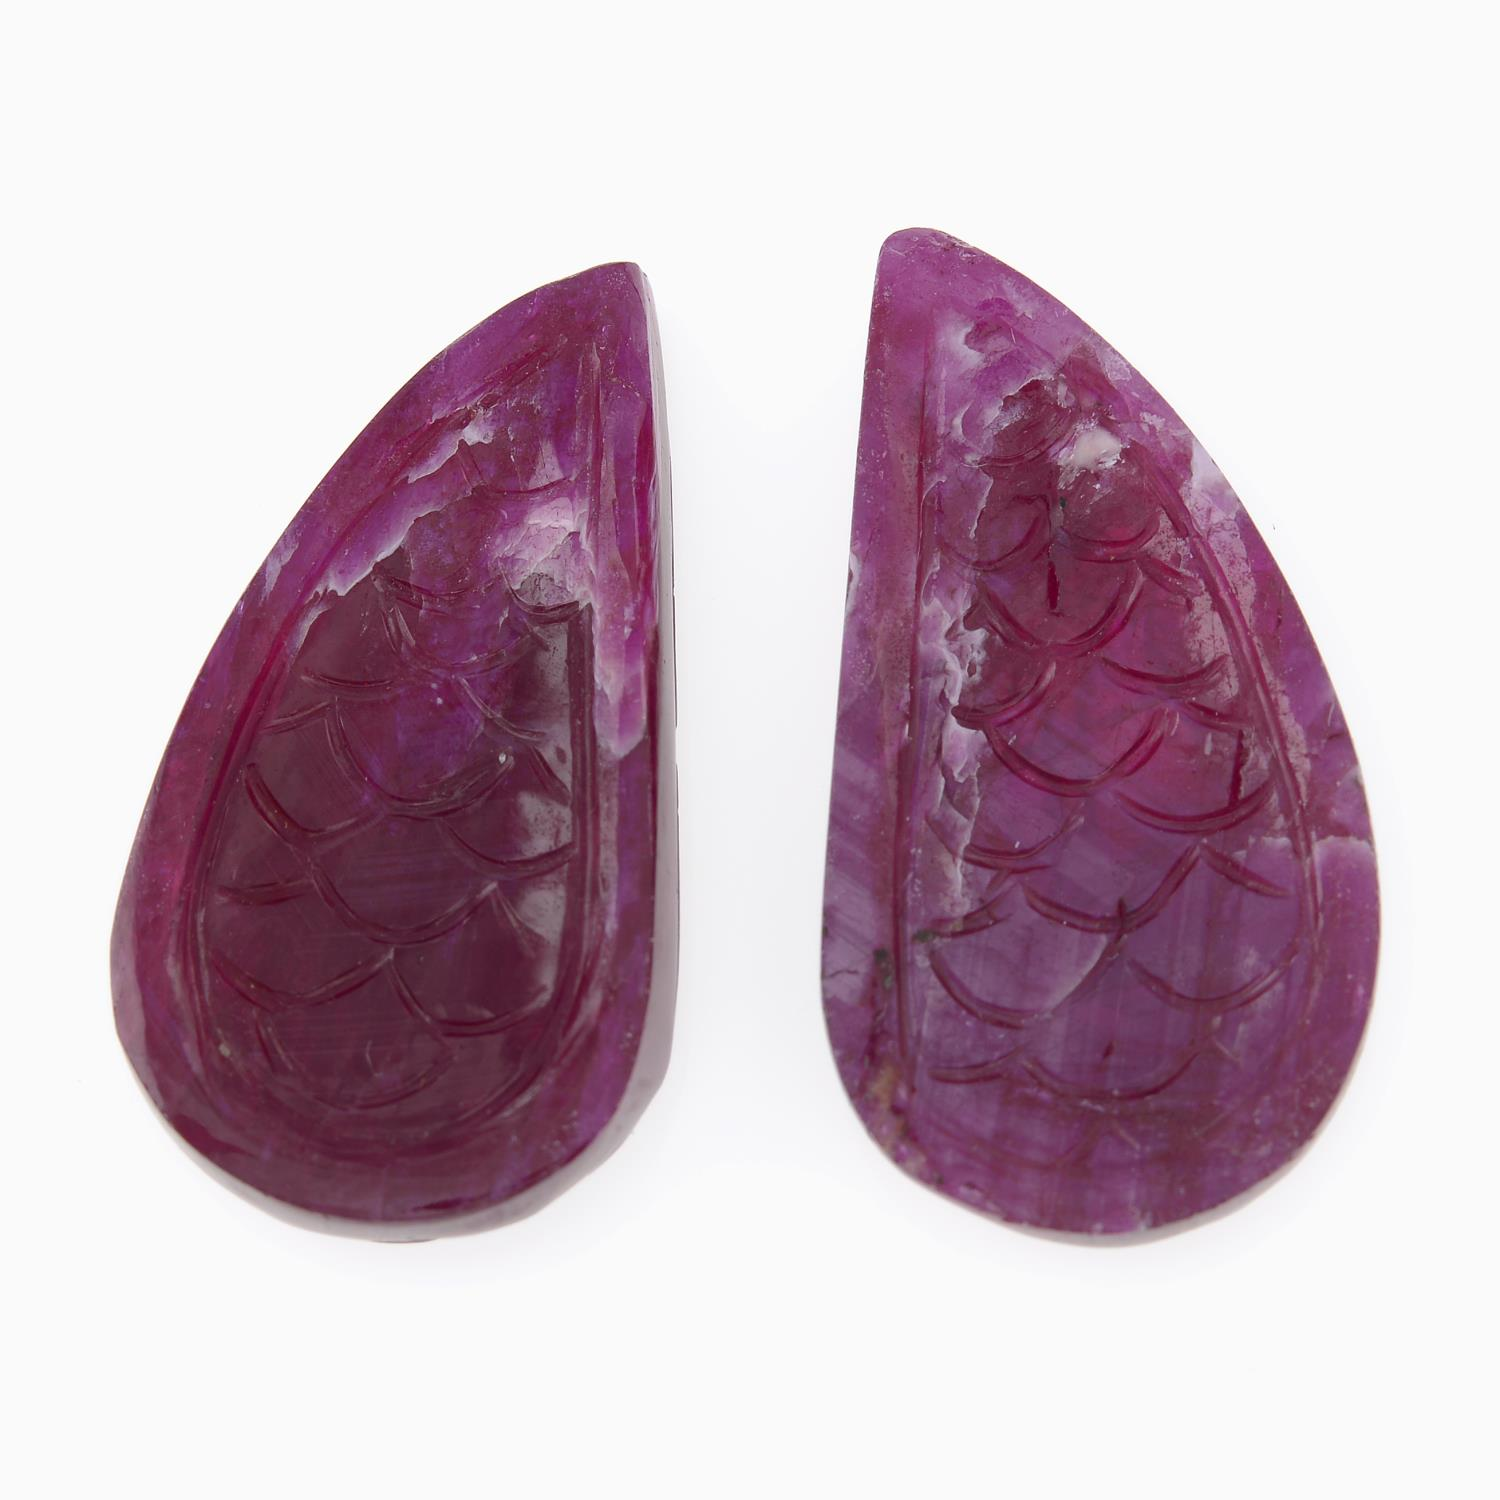 Selection of rough and carved rubies, - Image 2 of 3